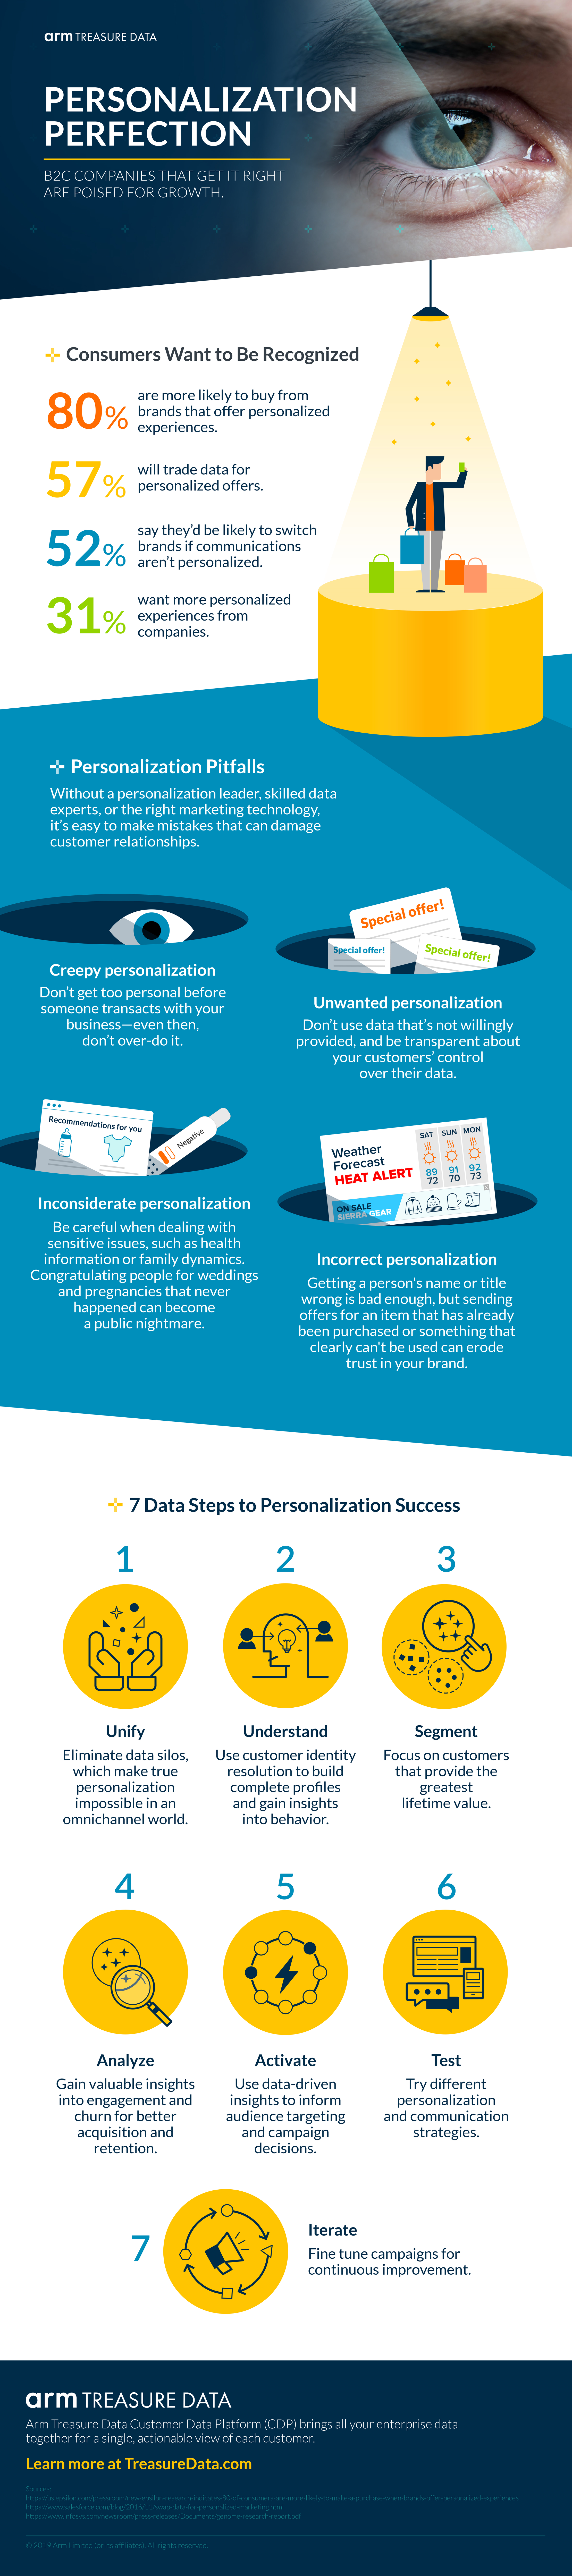 Infographic: Personalization Perfection, B2C Companies that Get It Right Are Poised for Growth